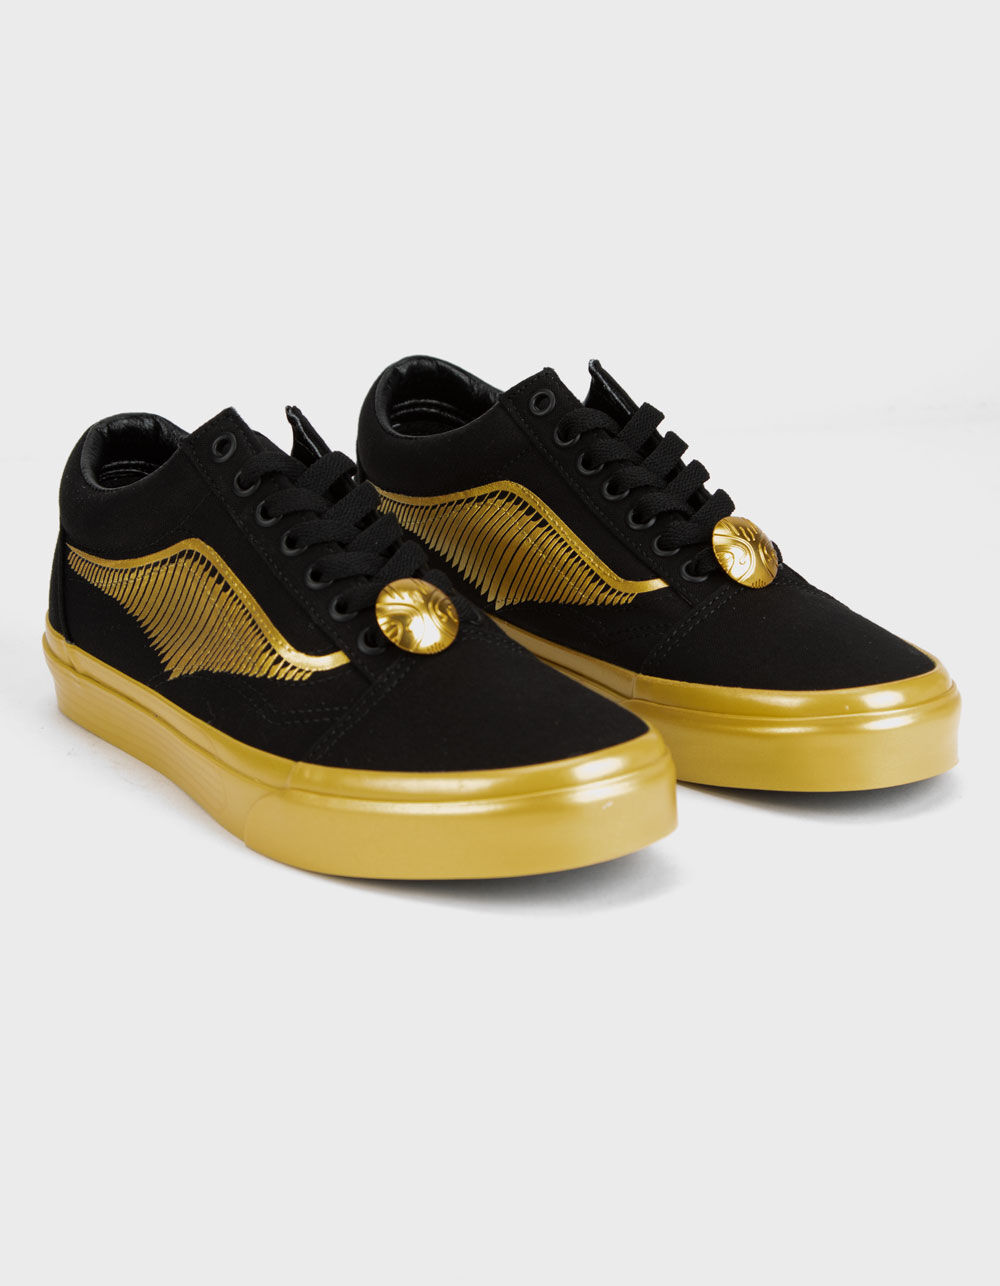 VANS x Harry Potter Golden Snitch Old Skool Shoes